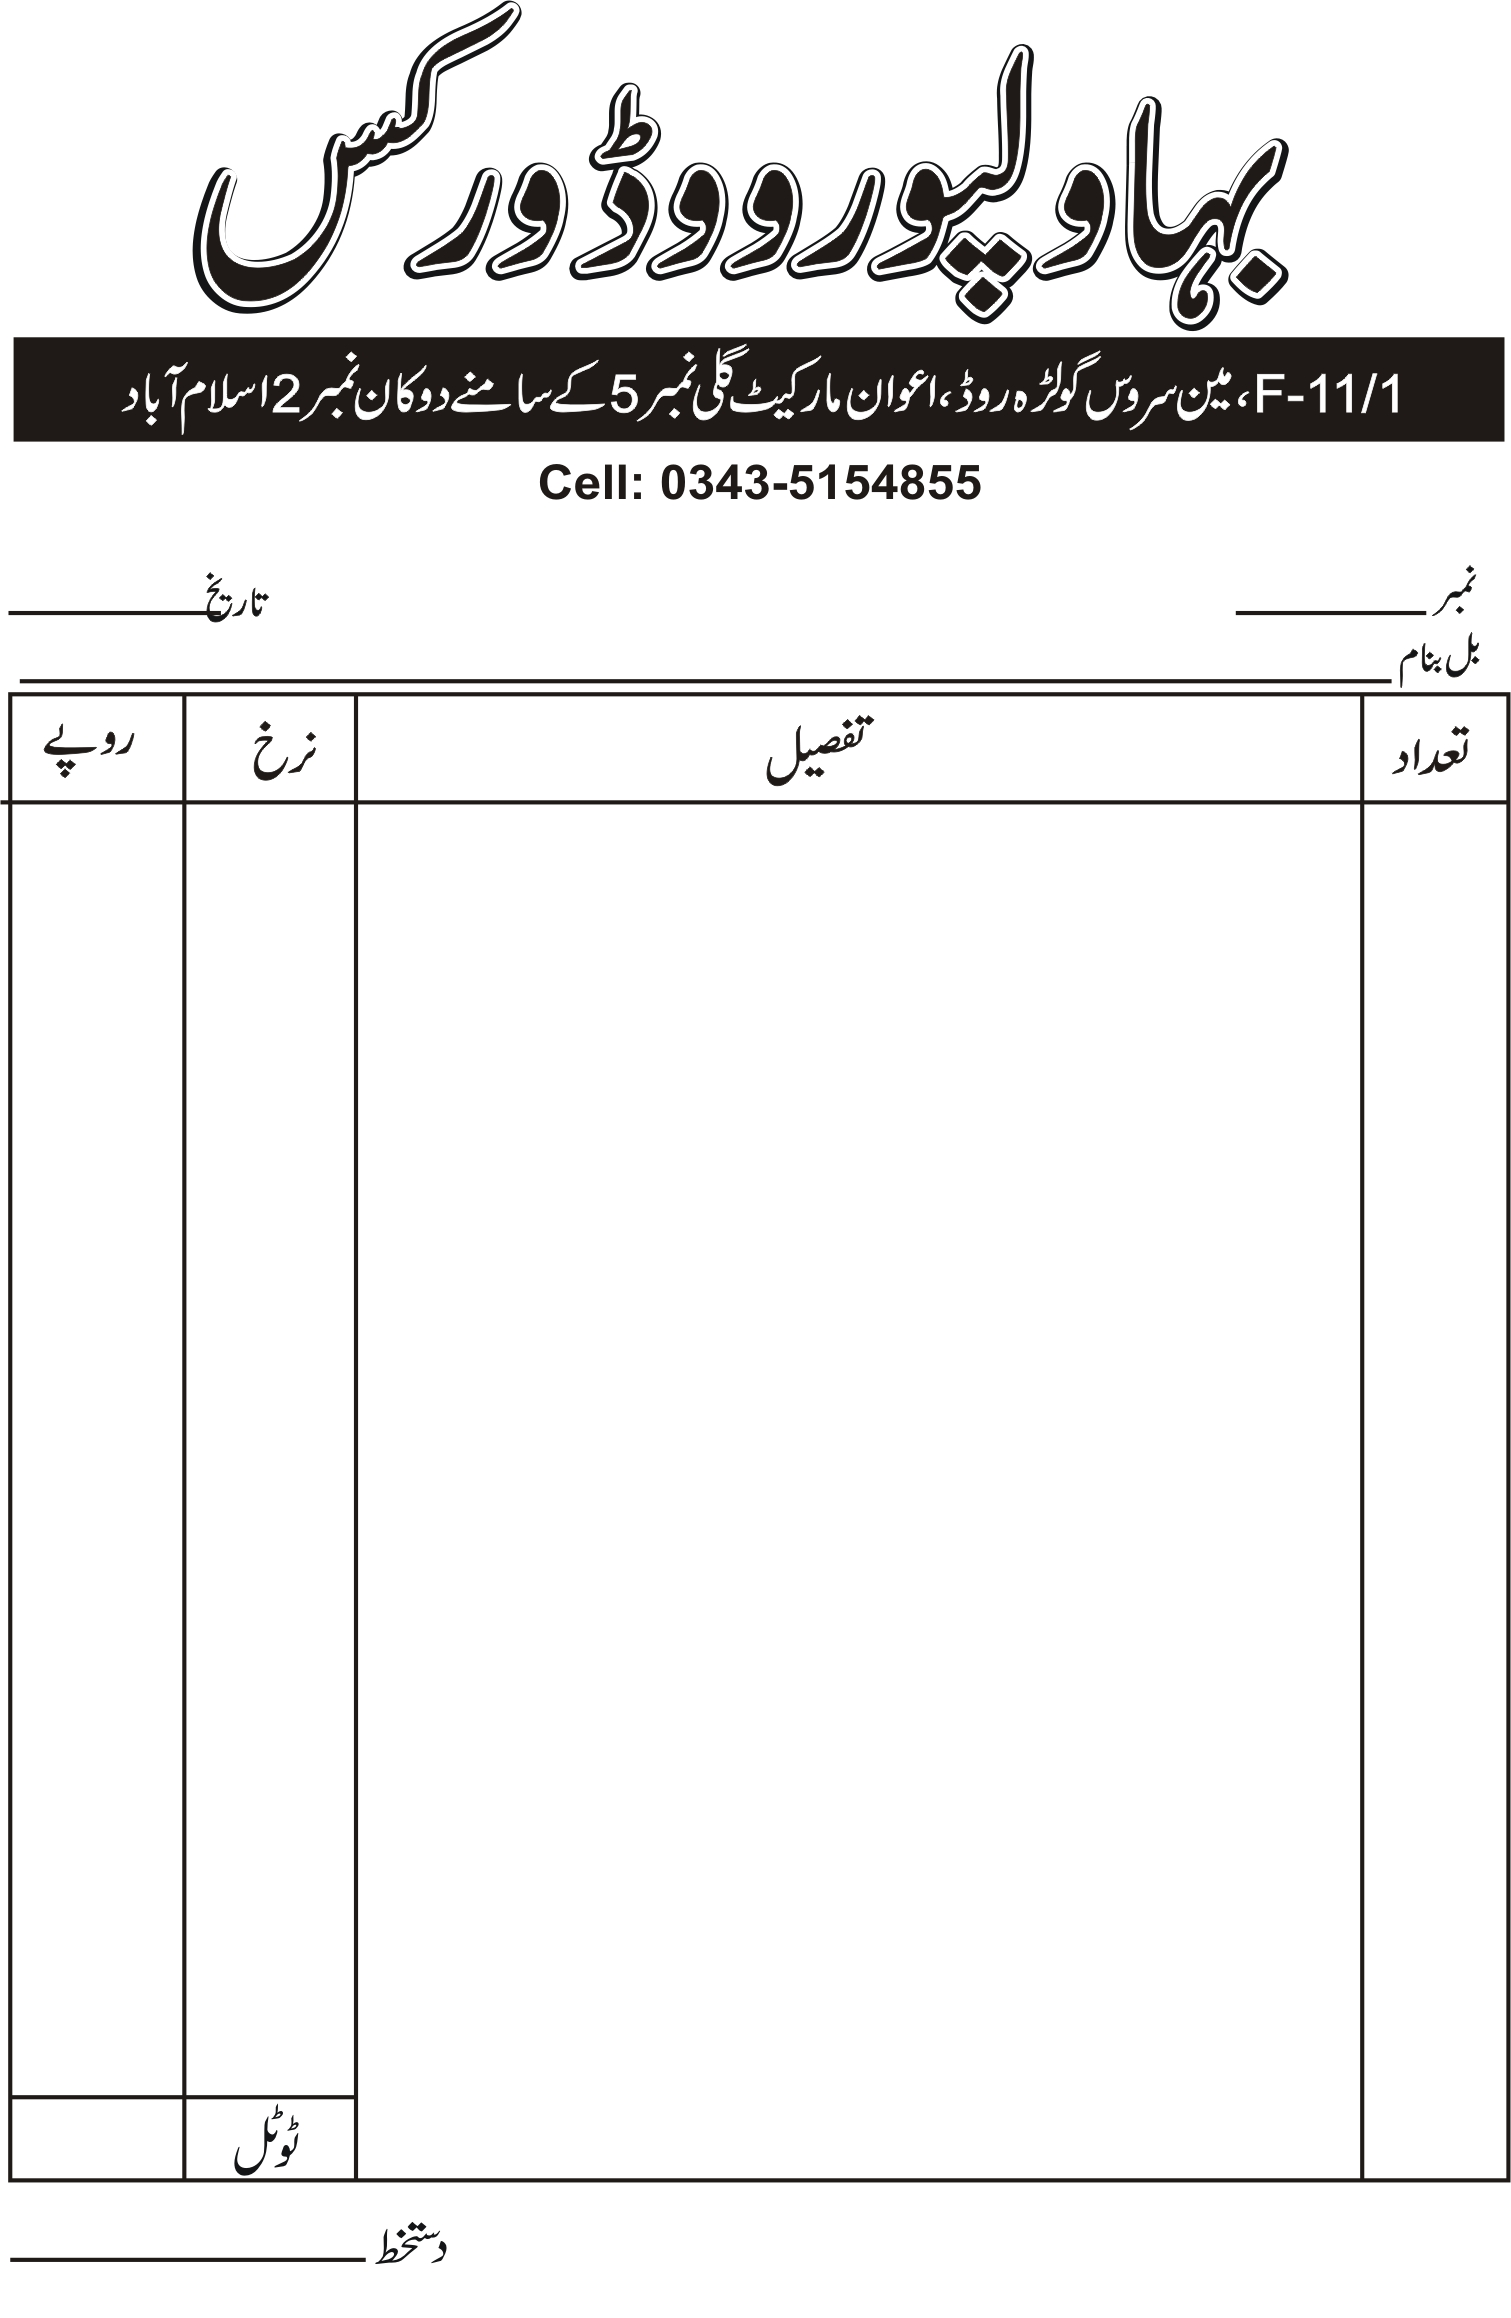 bill books invoices cash memo design islamabad printers very high quality invoice book printing services in low prices best printing press please call us today for bill book printing rates islamabad